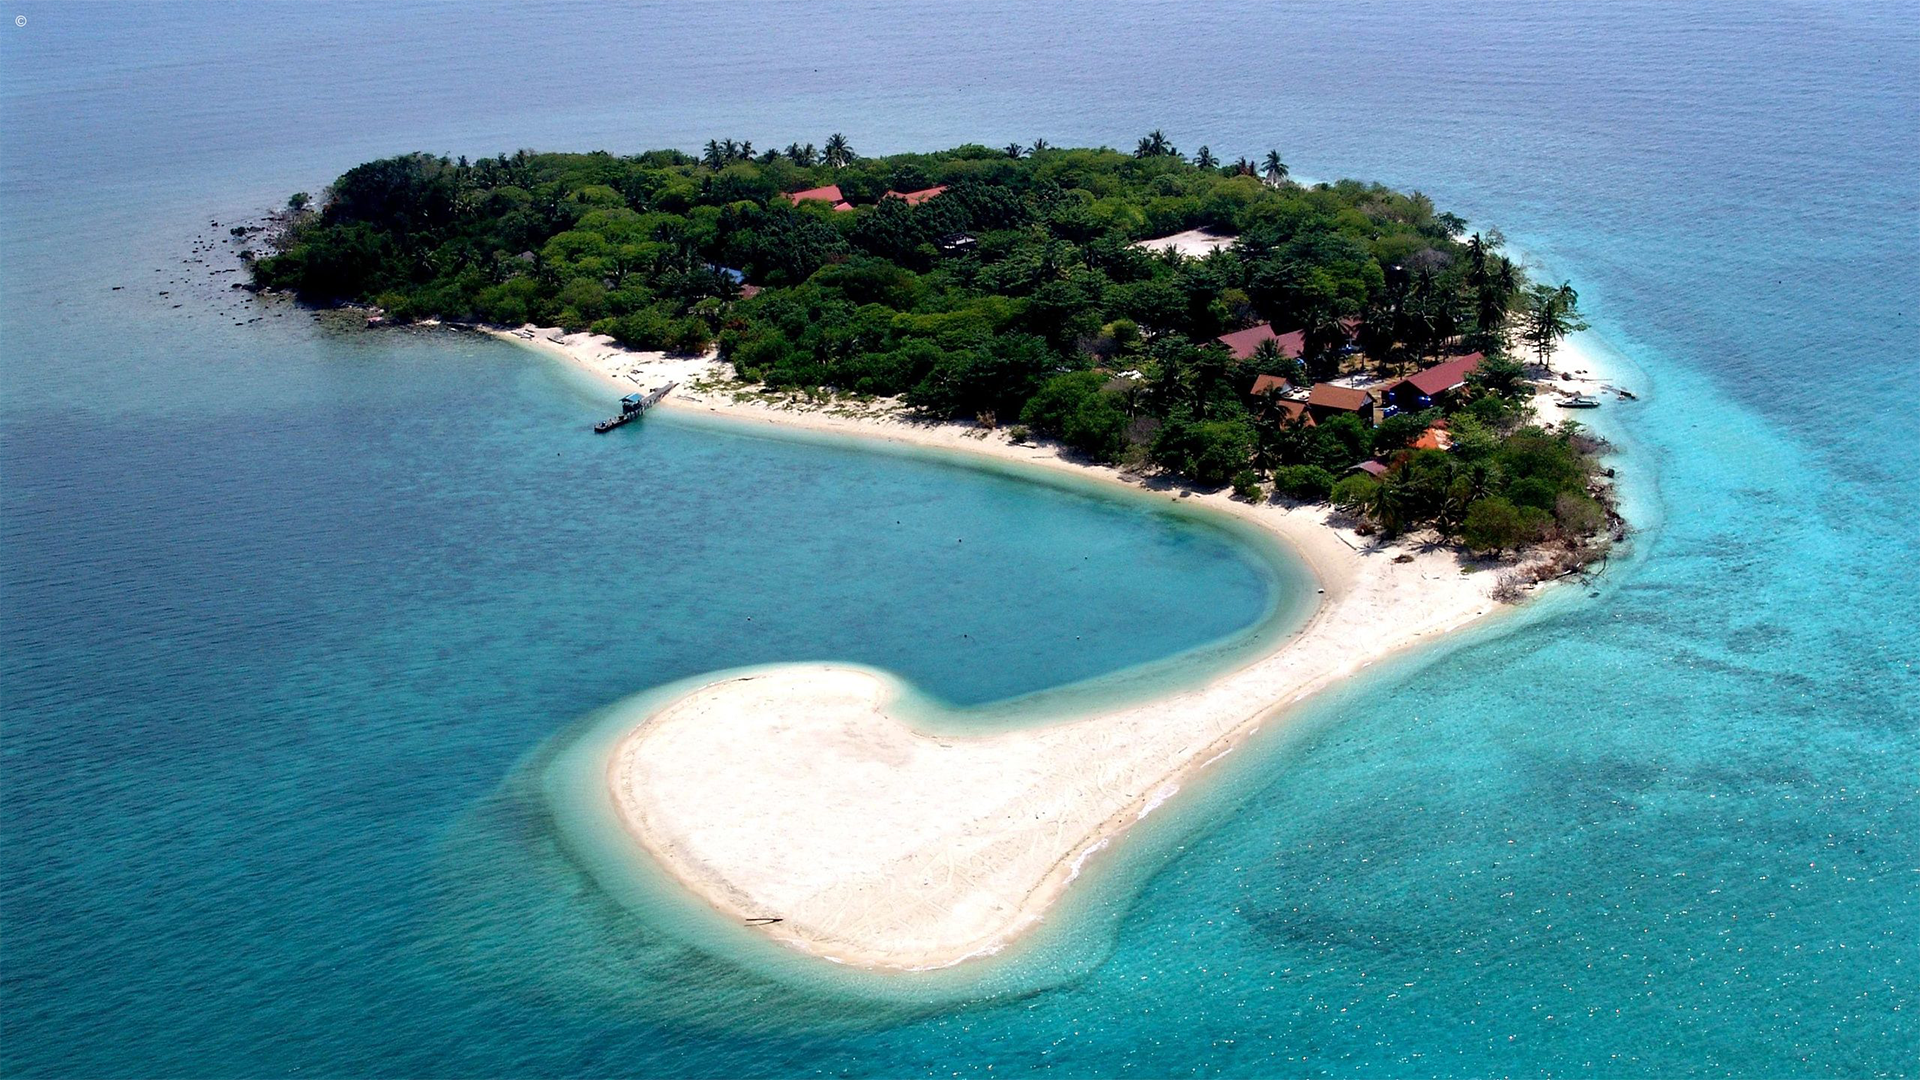 Selingan Island Resort